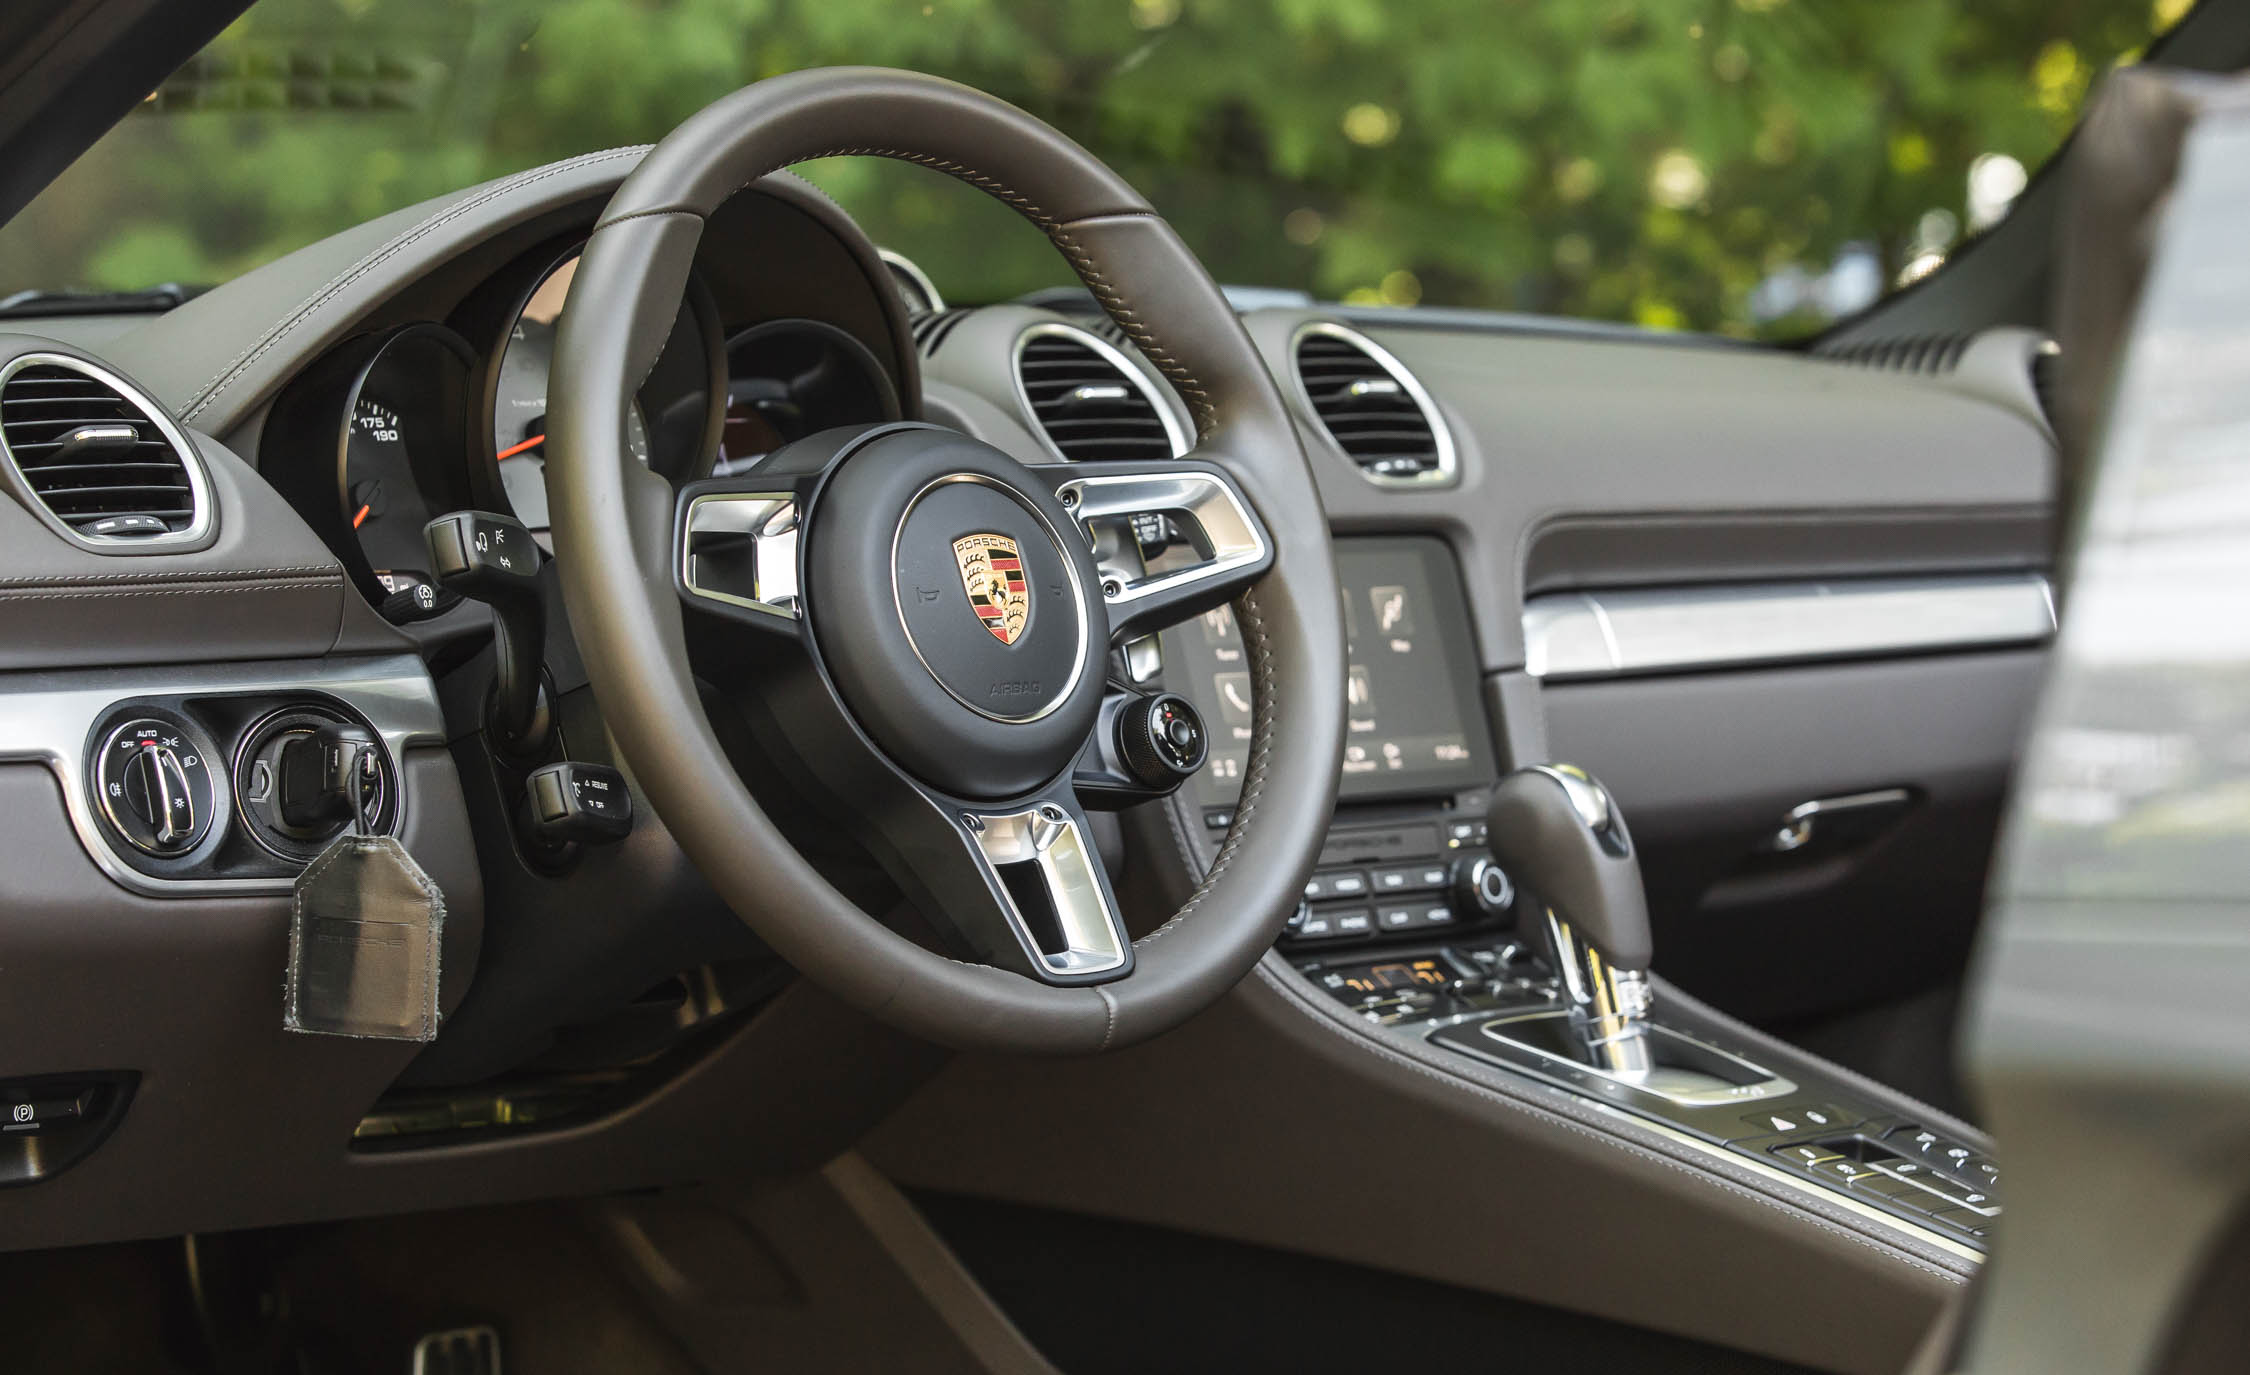 2017 Porsche 718 Boxster S Interior Cockpit Steering Wheel (View 37 of 71)